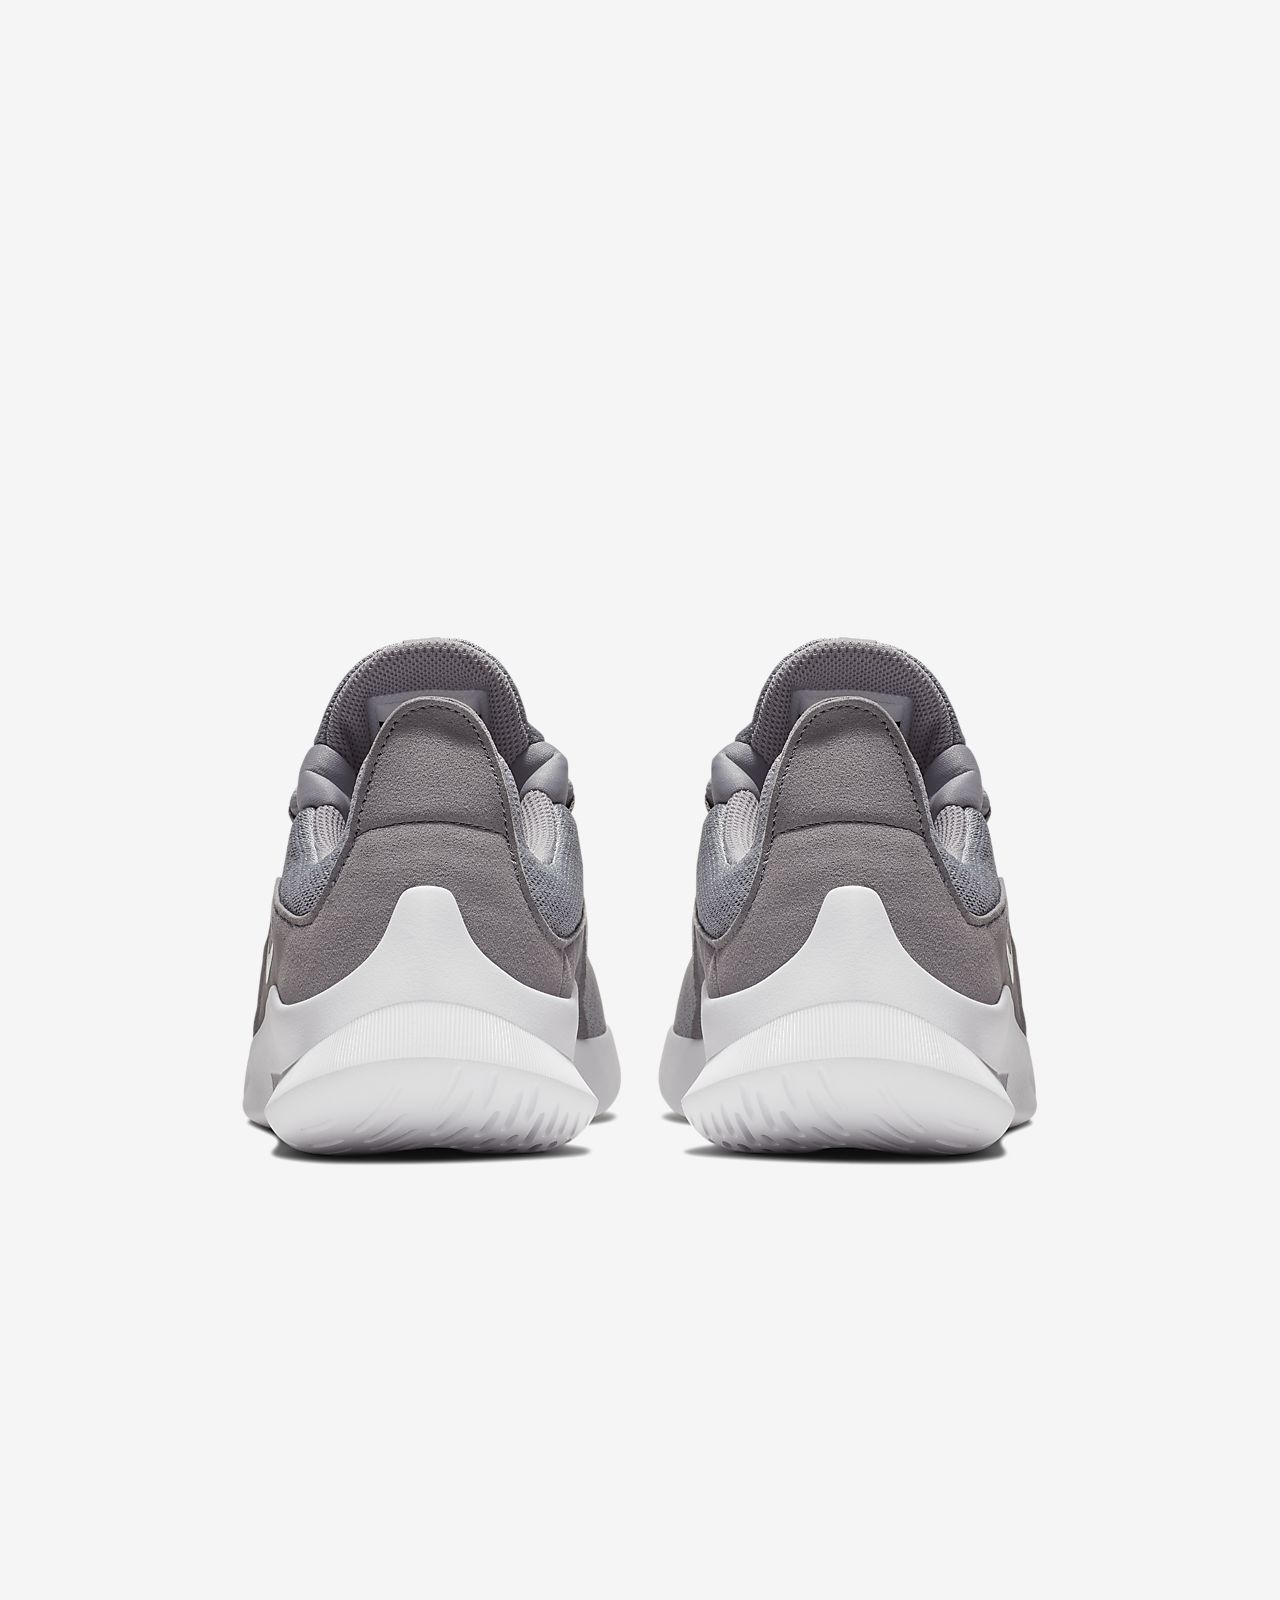 online store 5063f cd907 Low Resolution Nike Viale Men s Shoe Nike Viale Men s Shoe